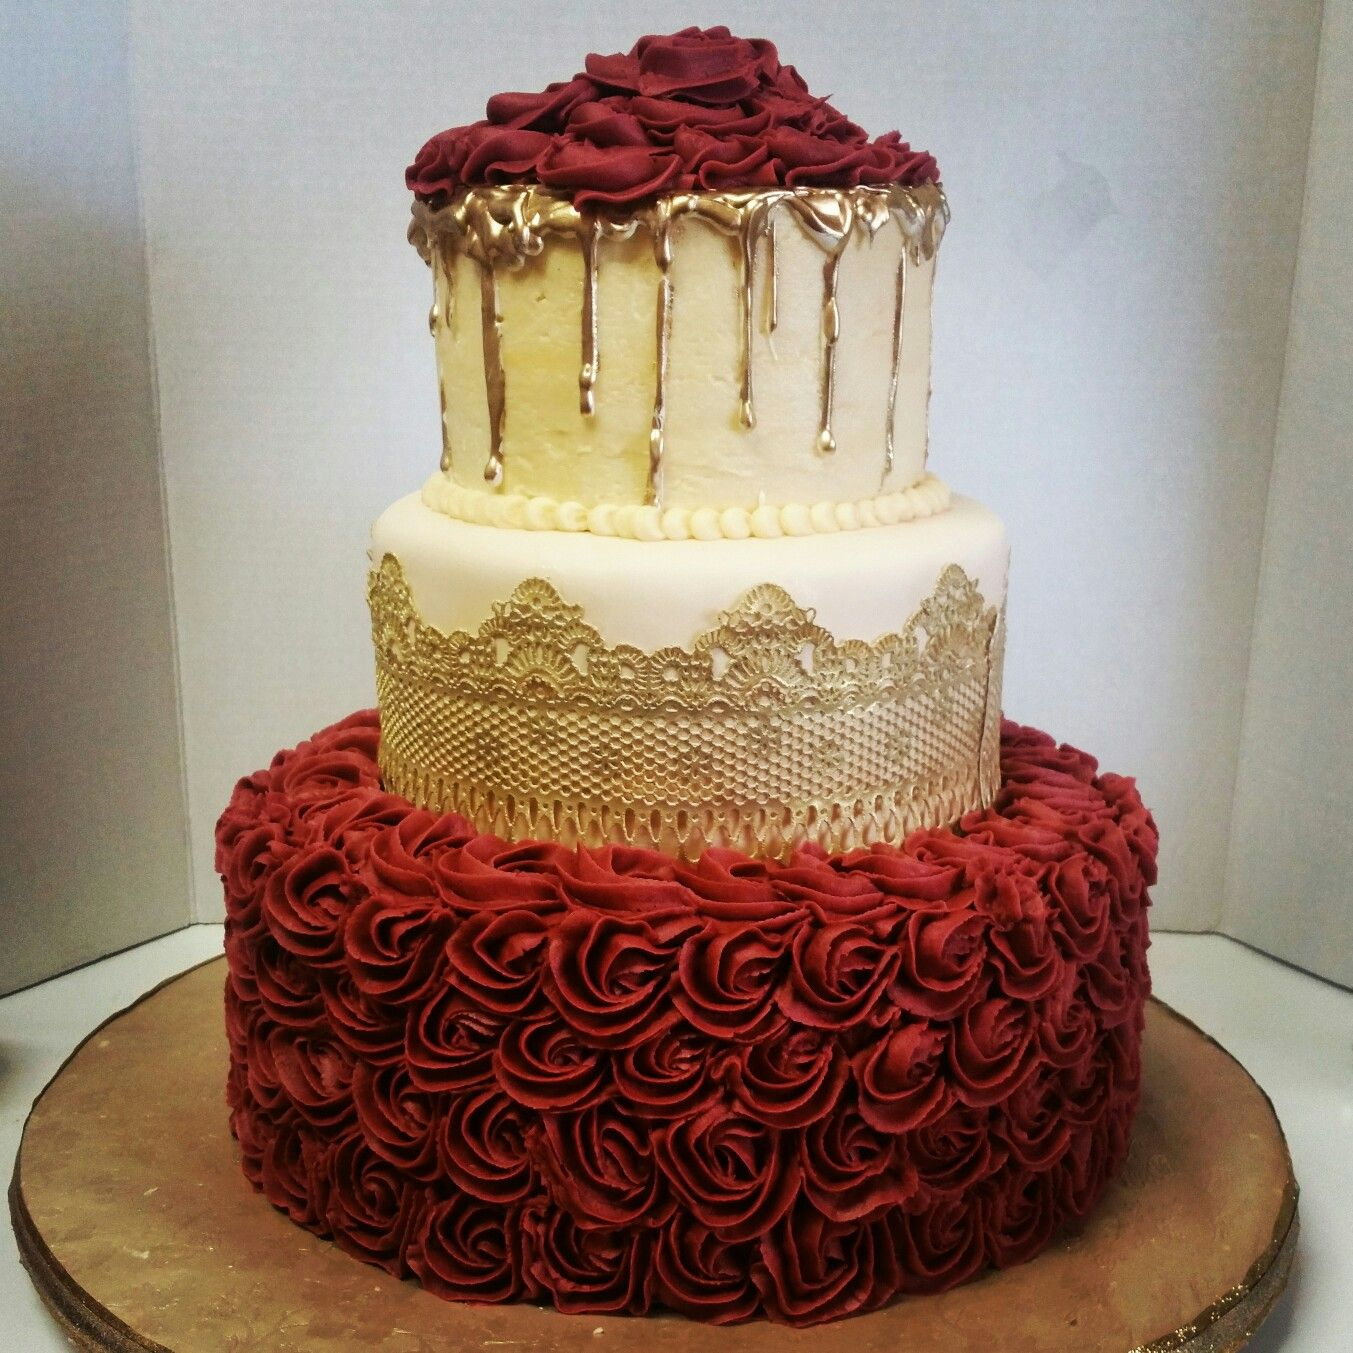 burgundy black and gold wedding cakes fb cakes by msvickie my cakes fb cakes by msvickie 12233